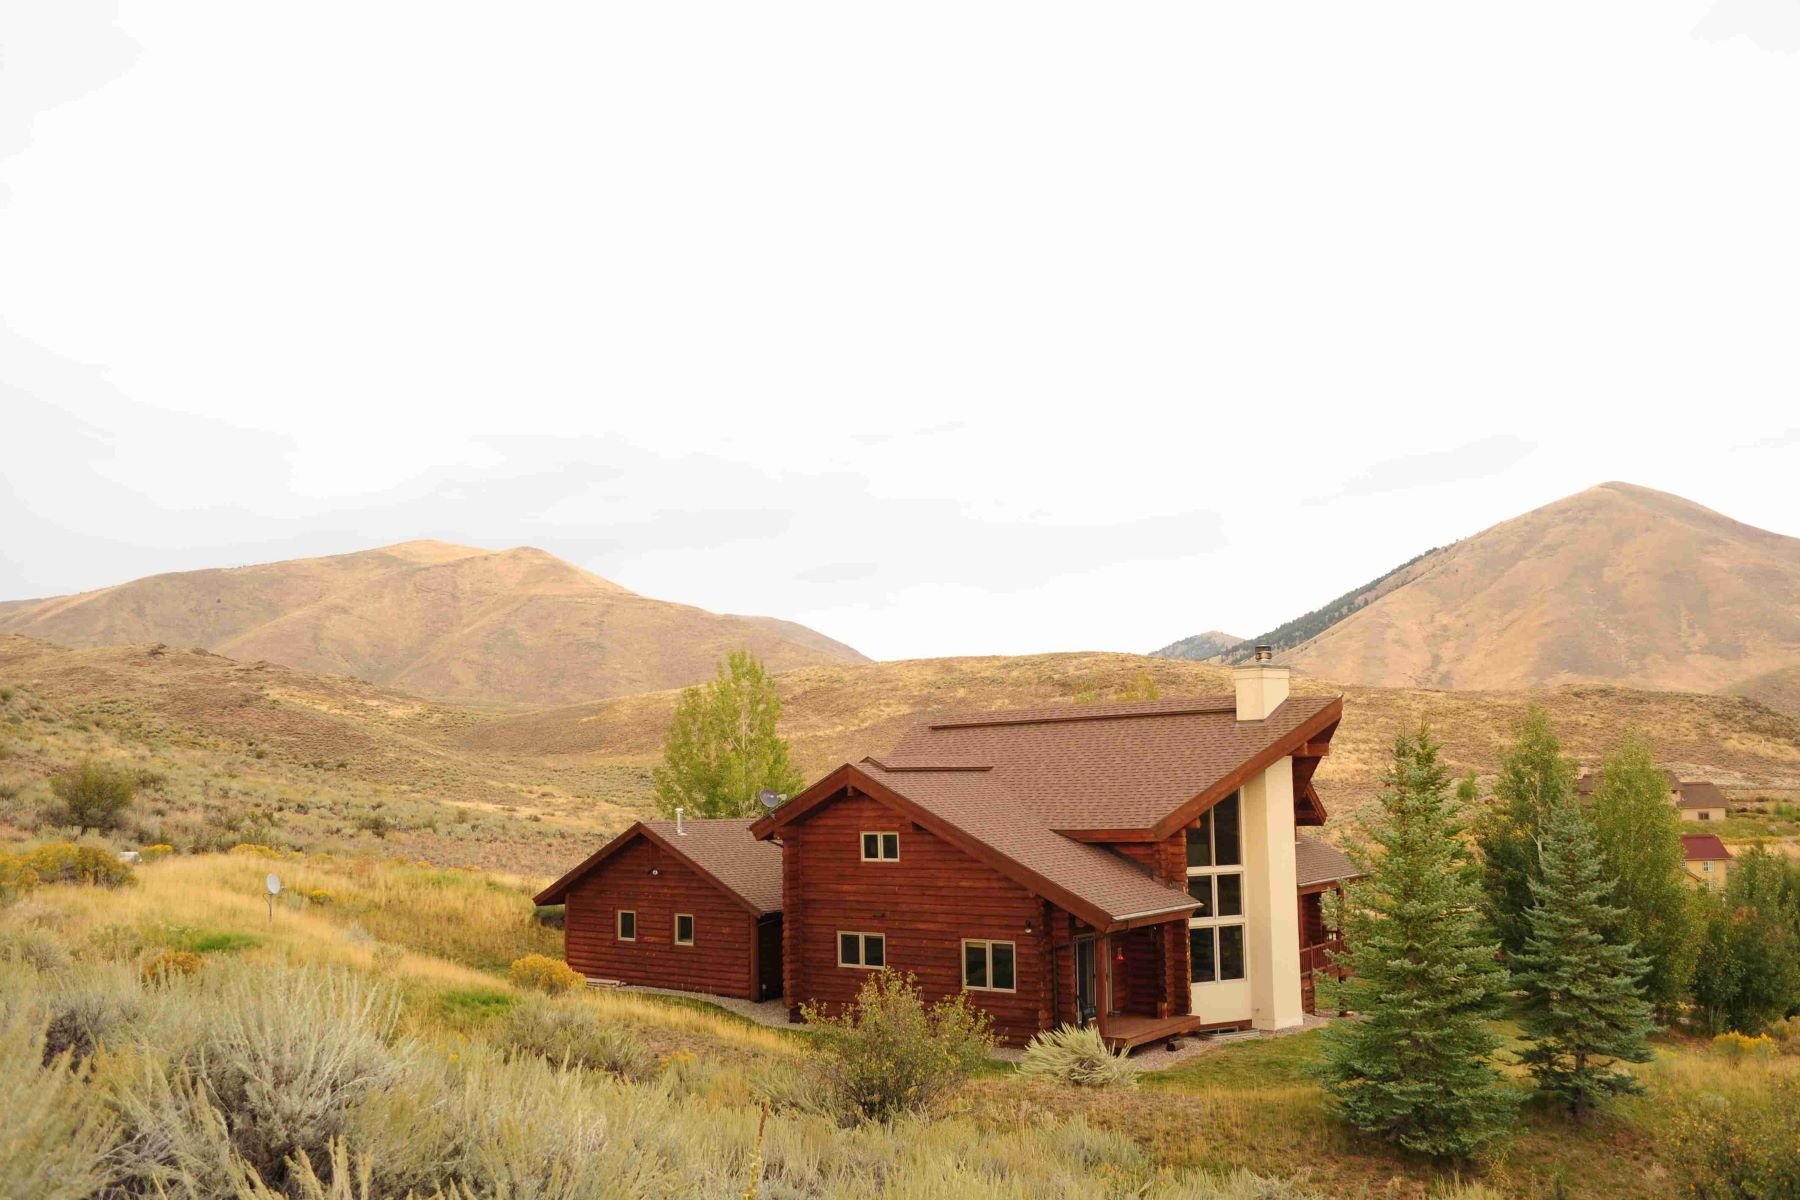 Additional photo for property listing at High on a Hilltop 213 Sitting Bull Hailey, Idaho 83333 United States